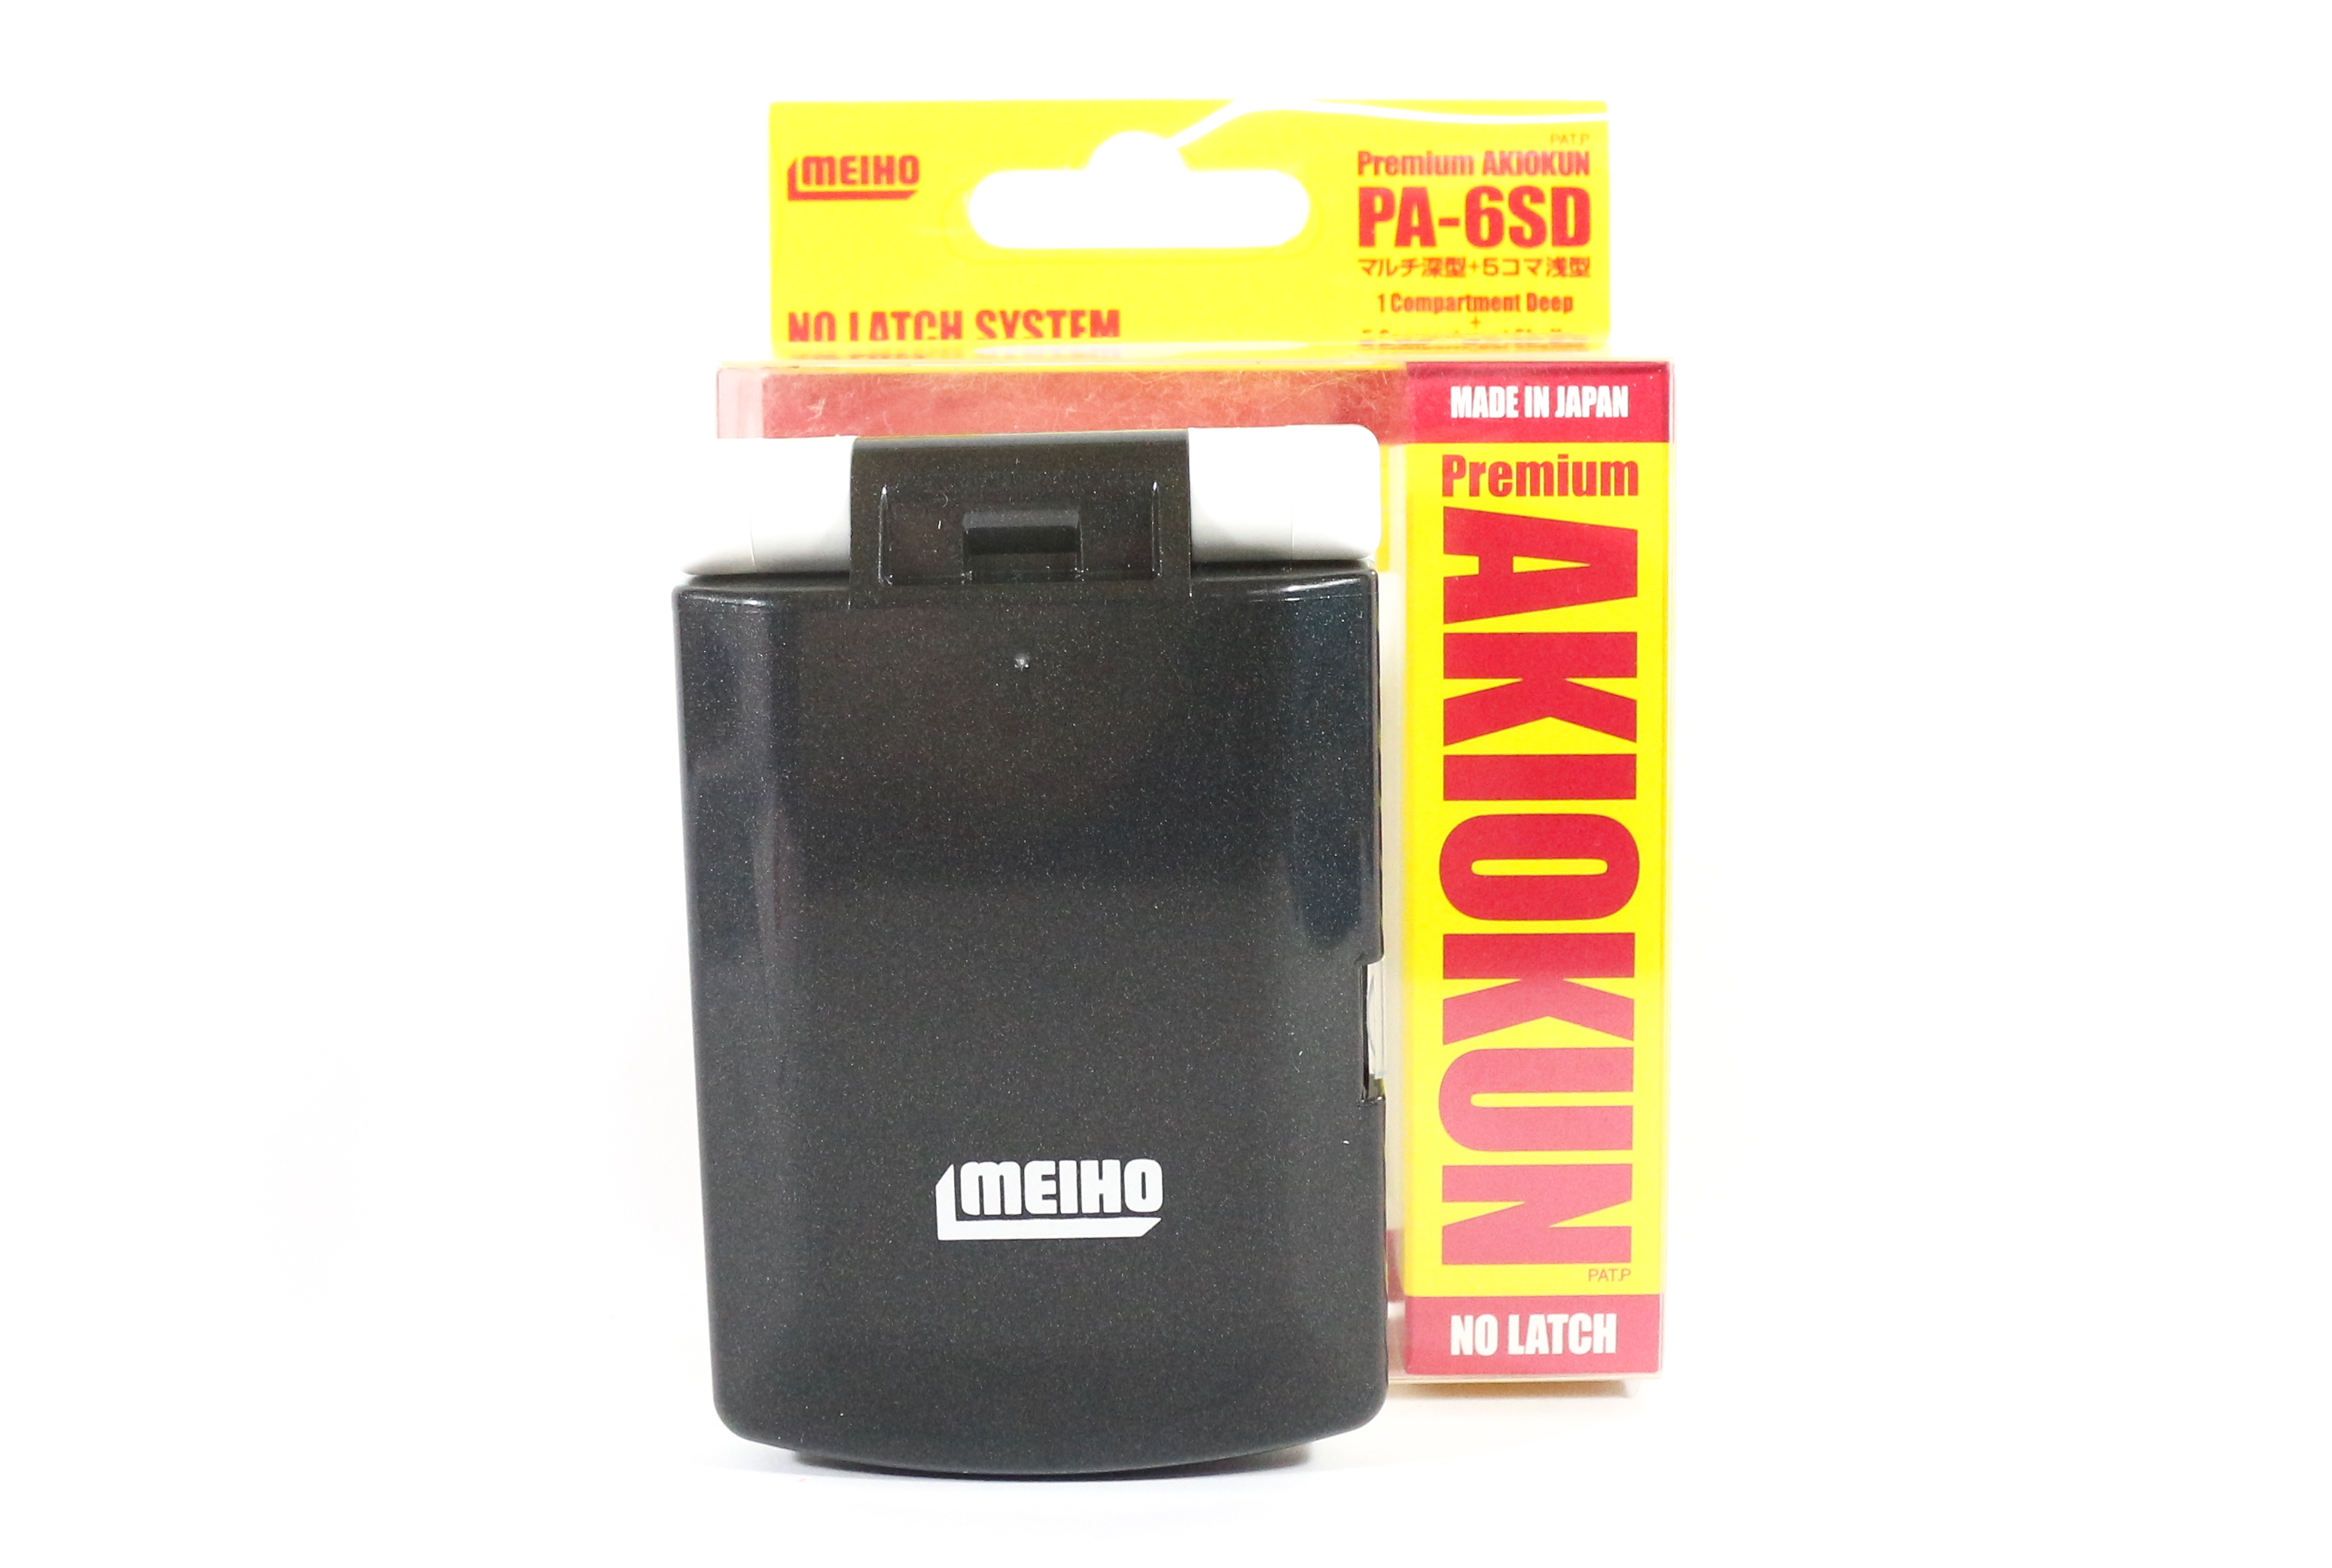 Meiho PA-6SD Akiokun Parts Case ( 97 x 64 x 25 mm ) Black White (8394)